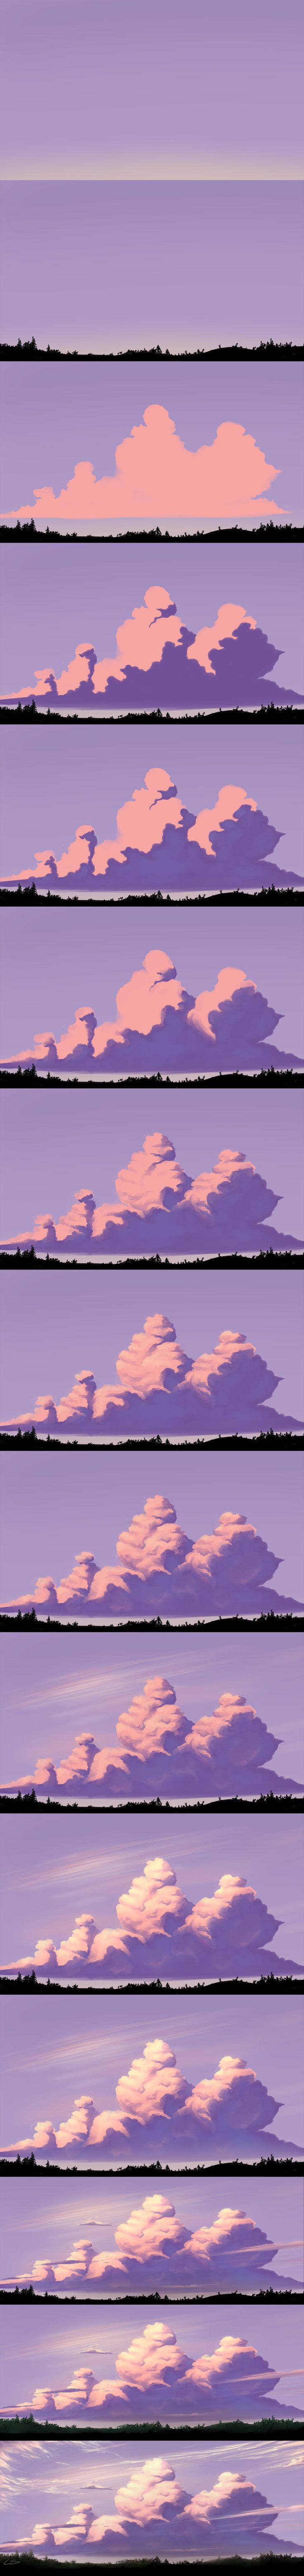 Digital vector art illustration; concept art nature scenery // So cool I don't know why I love it so much but I should try this in my art class!!!!